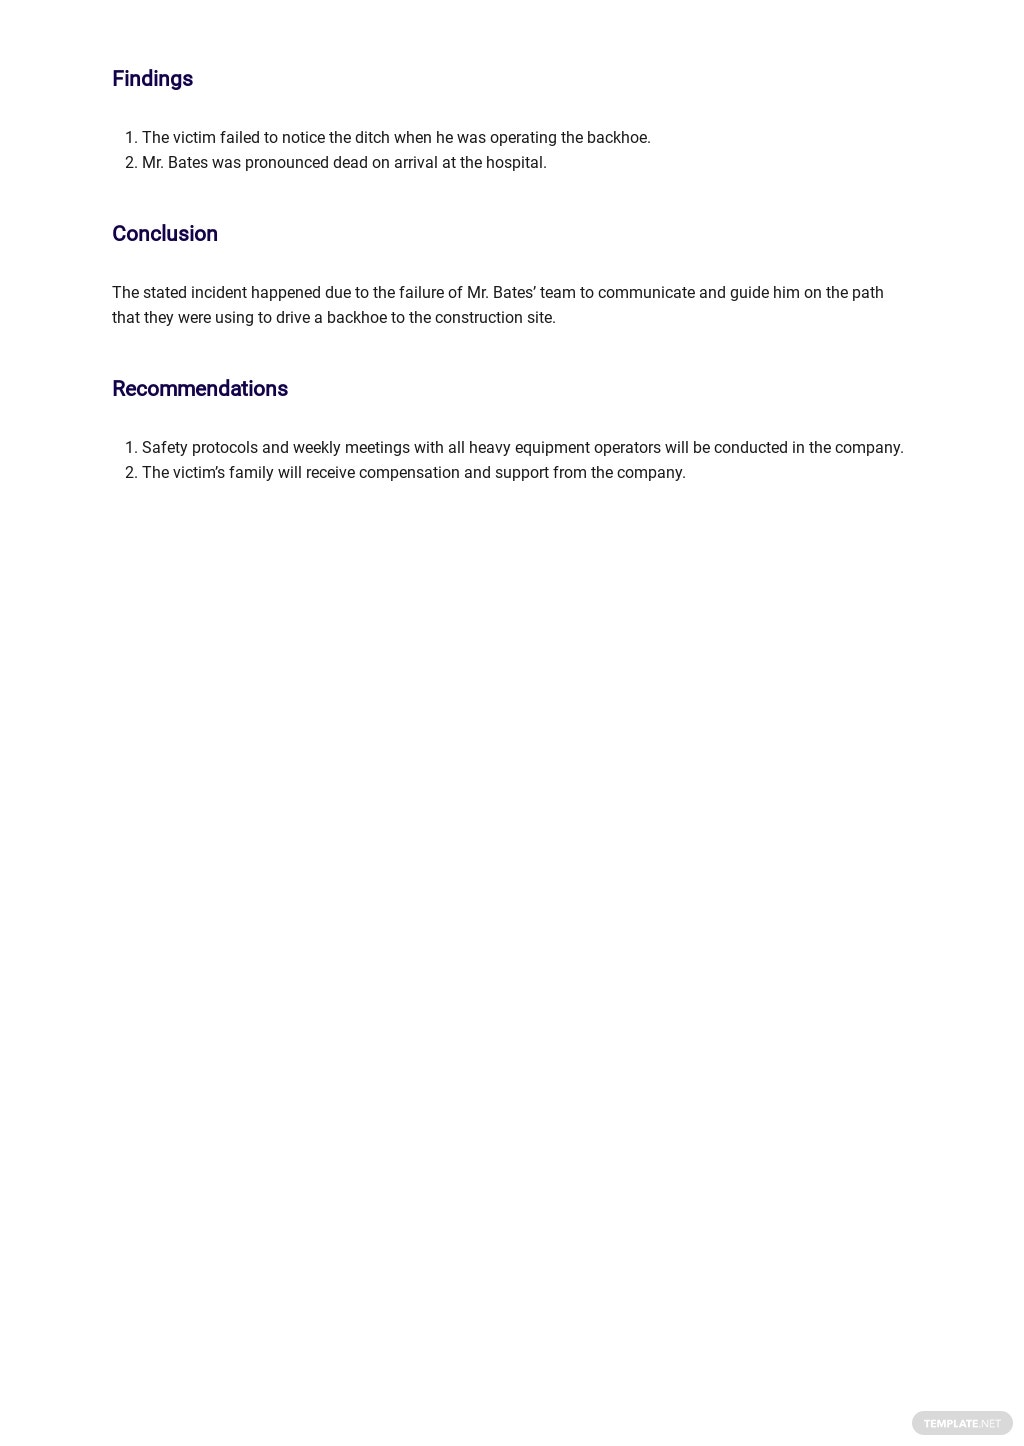 Free Construction Safety Report Template 2.jpe